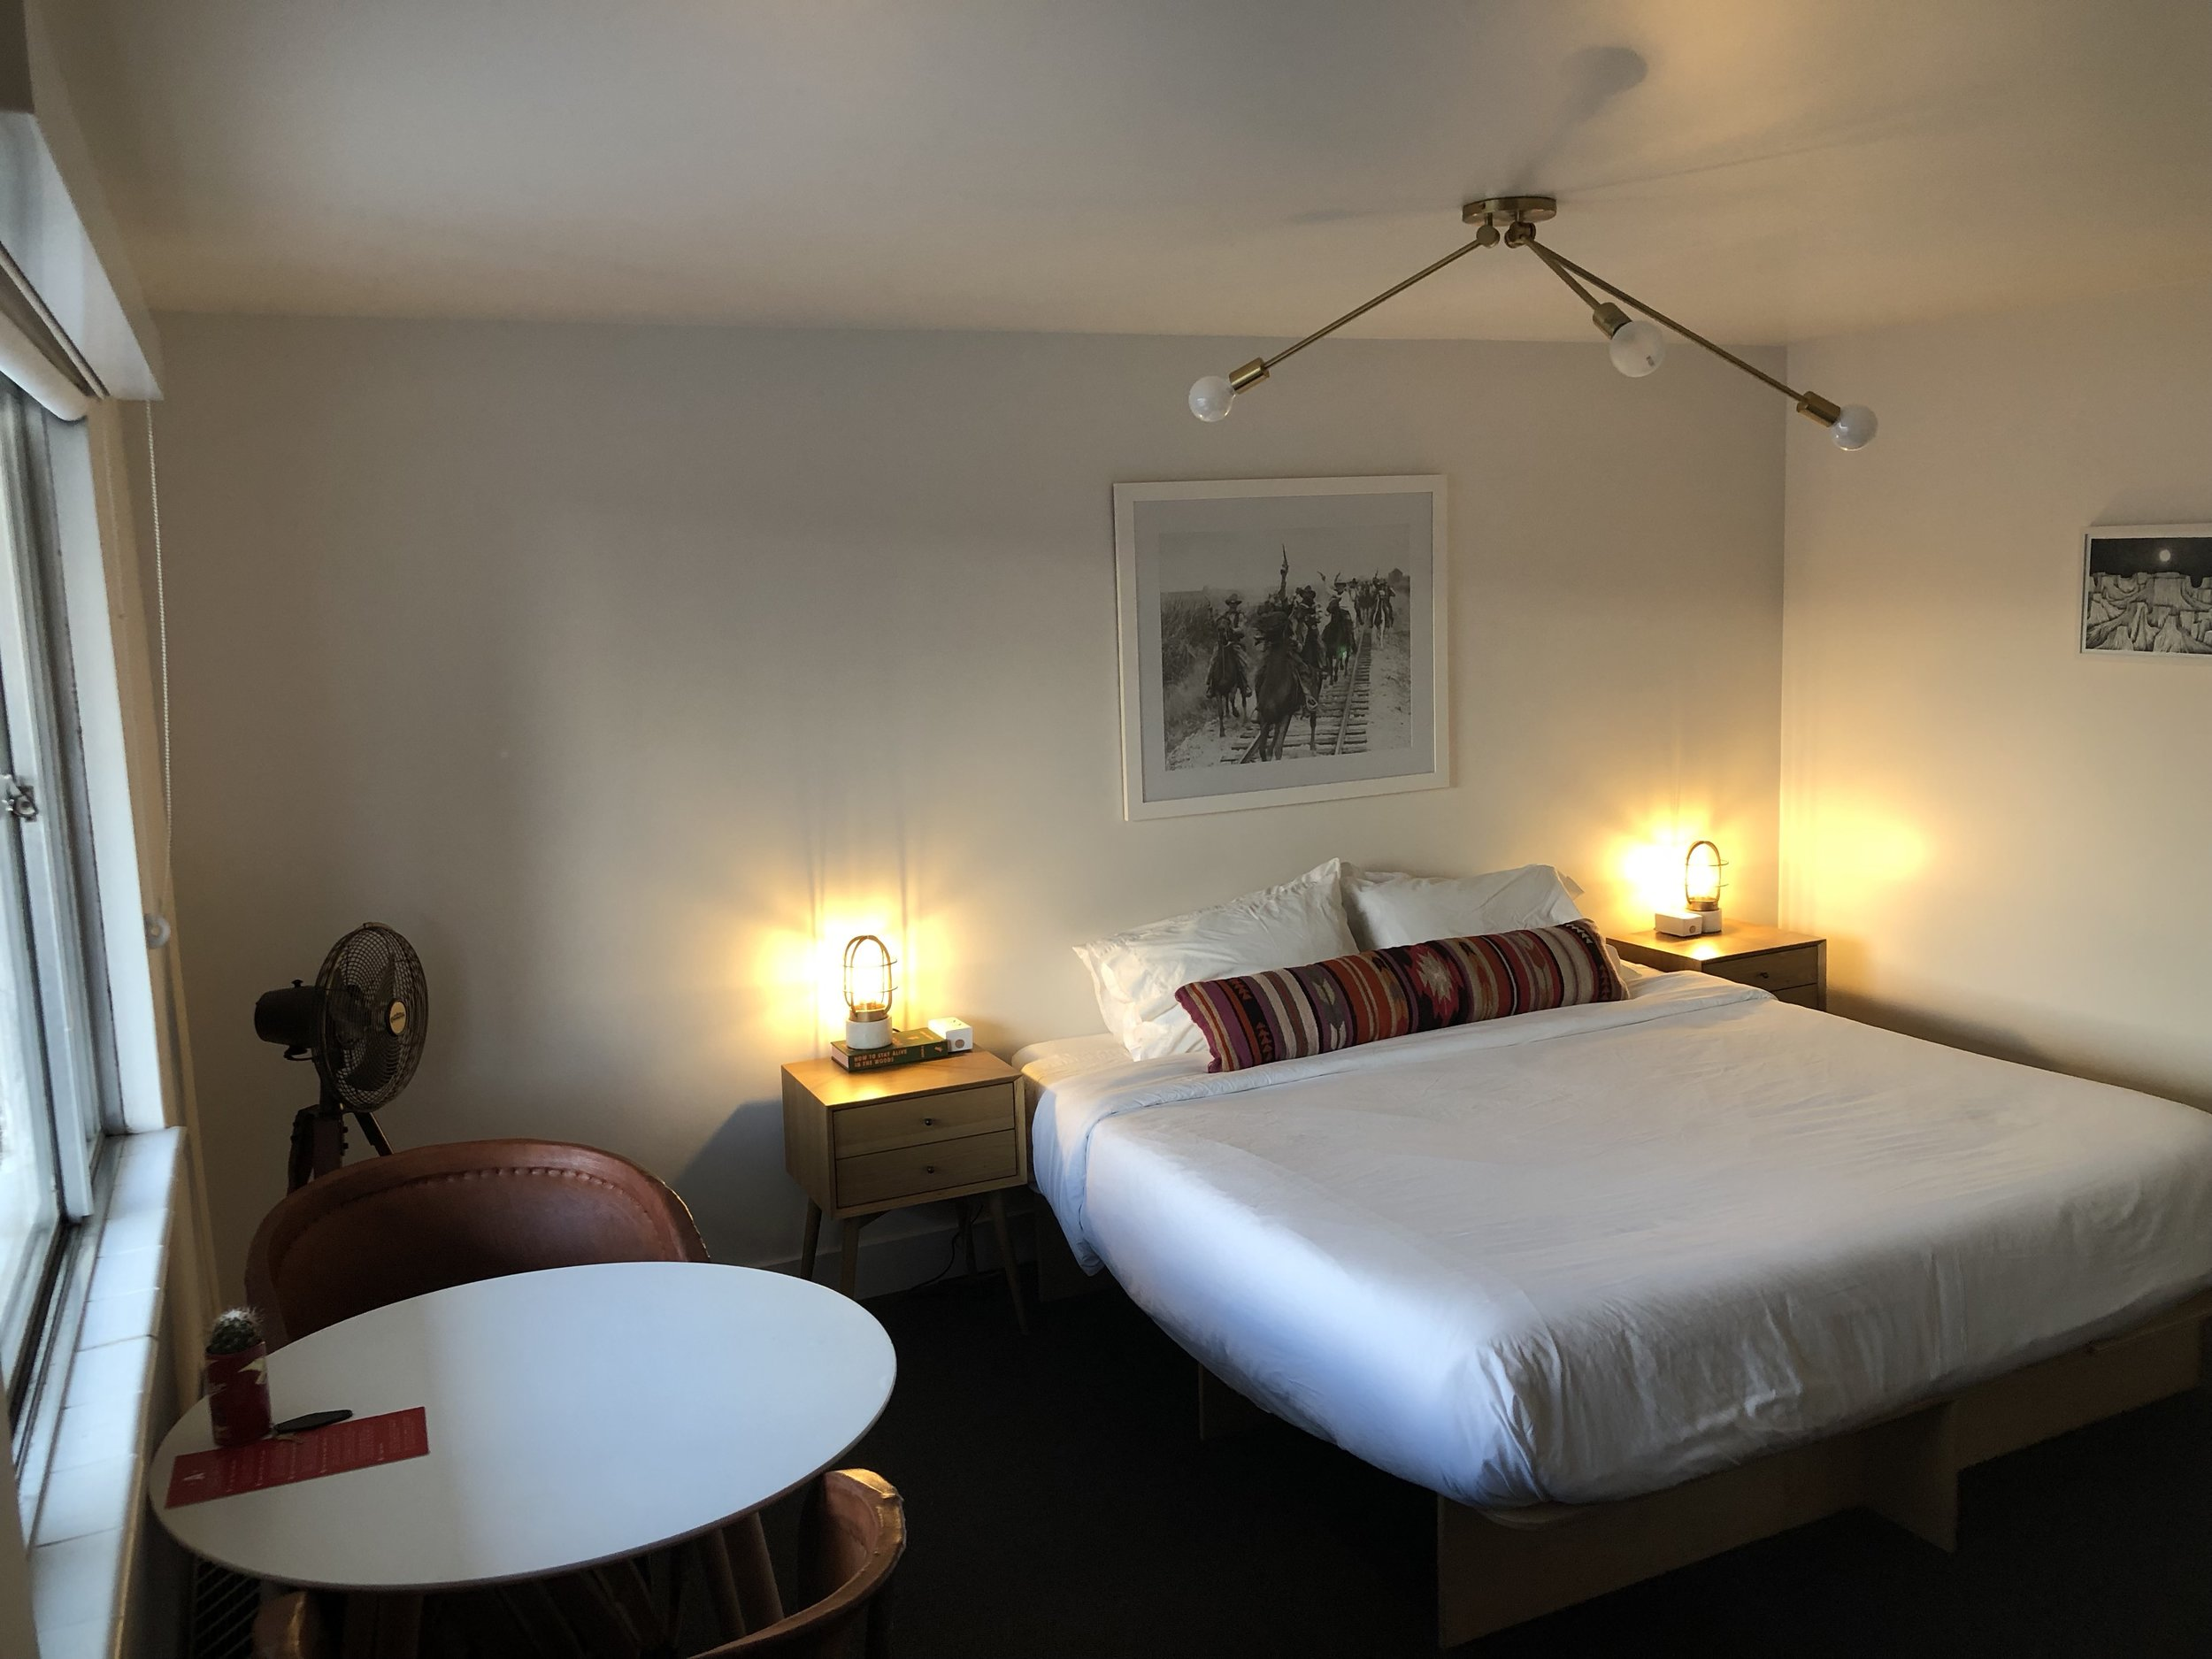 Traditional motel rooms are also available at the Amigo Lodge.